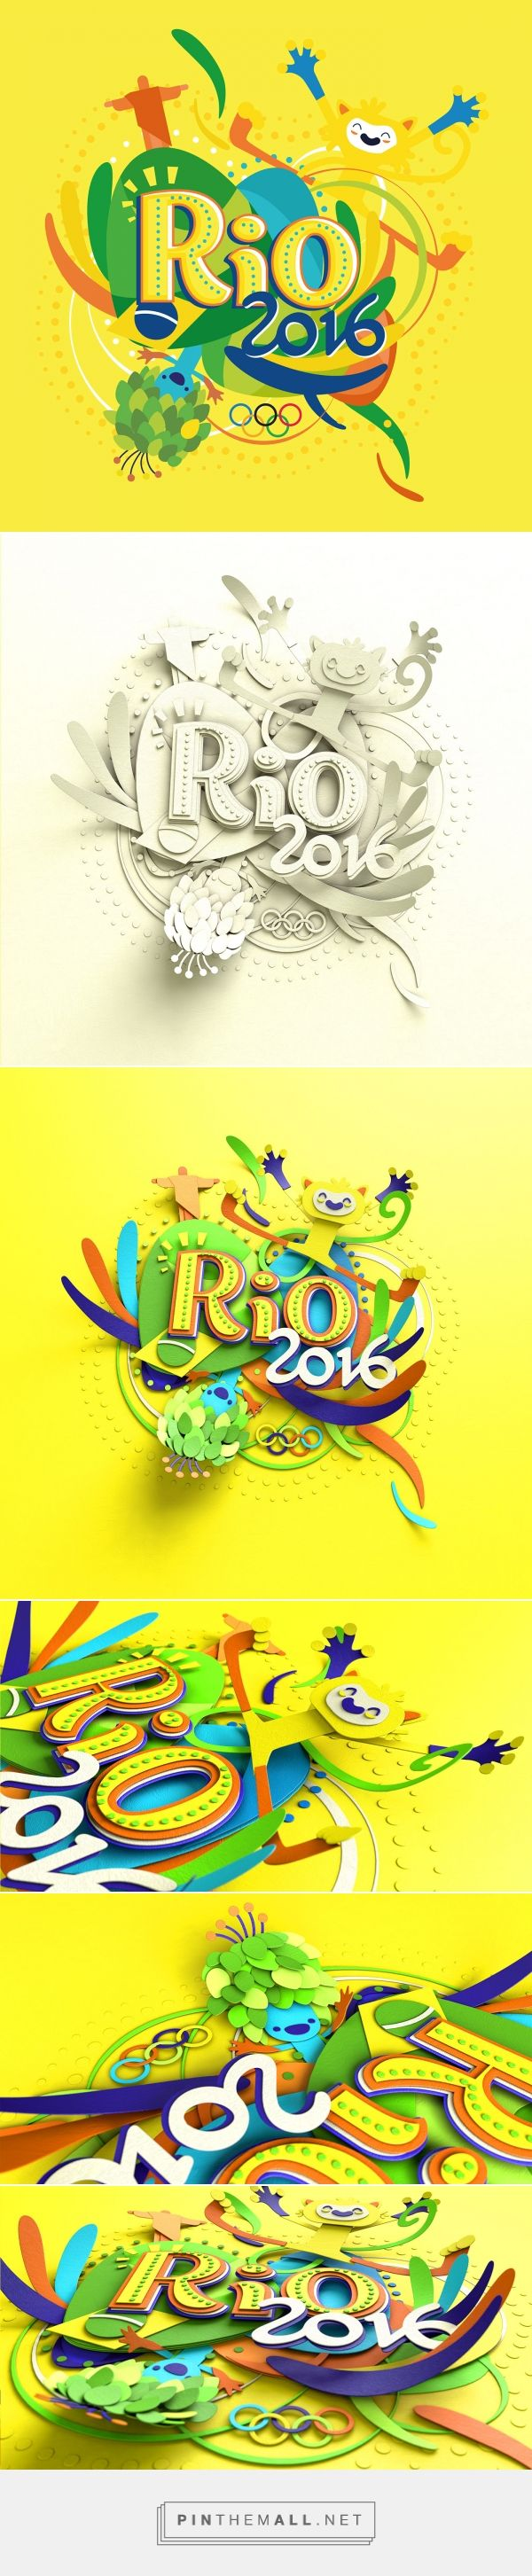 Olympic rings logo rio 2016 olympics logo designed by fred gelli - Inspirado No Rio 2016 Design On The Rocks A Grouped Images Picture See More Ouidtk Womens Rio 2016 Olympic Basketball Logo